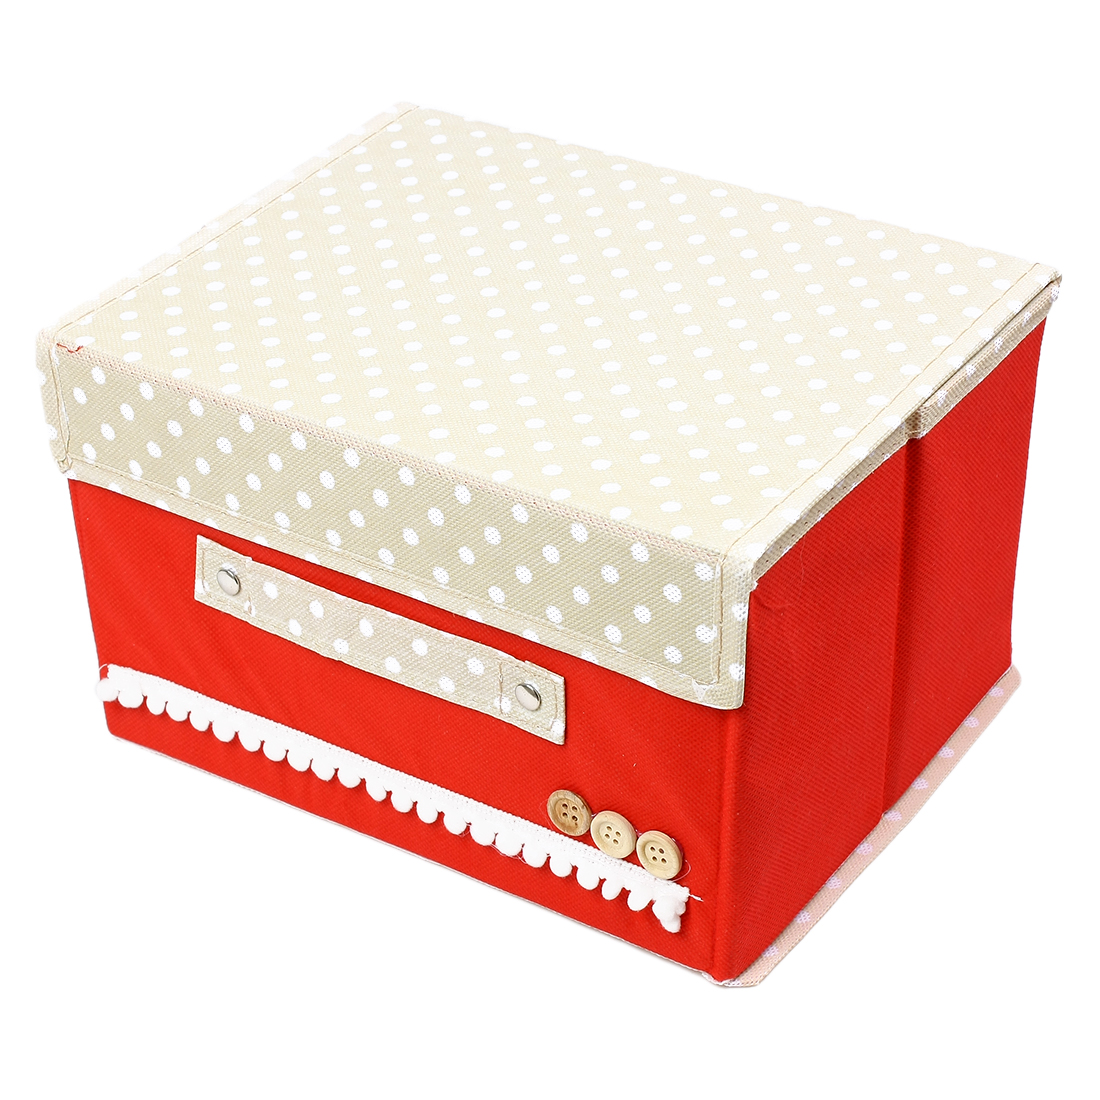 Makeup Cosmetic Jewelry Container Polka Dot Pattern Cover Storage Box Holder Red